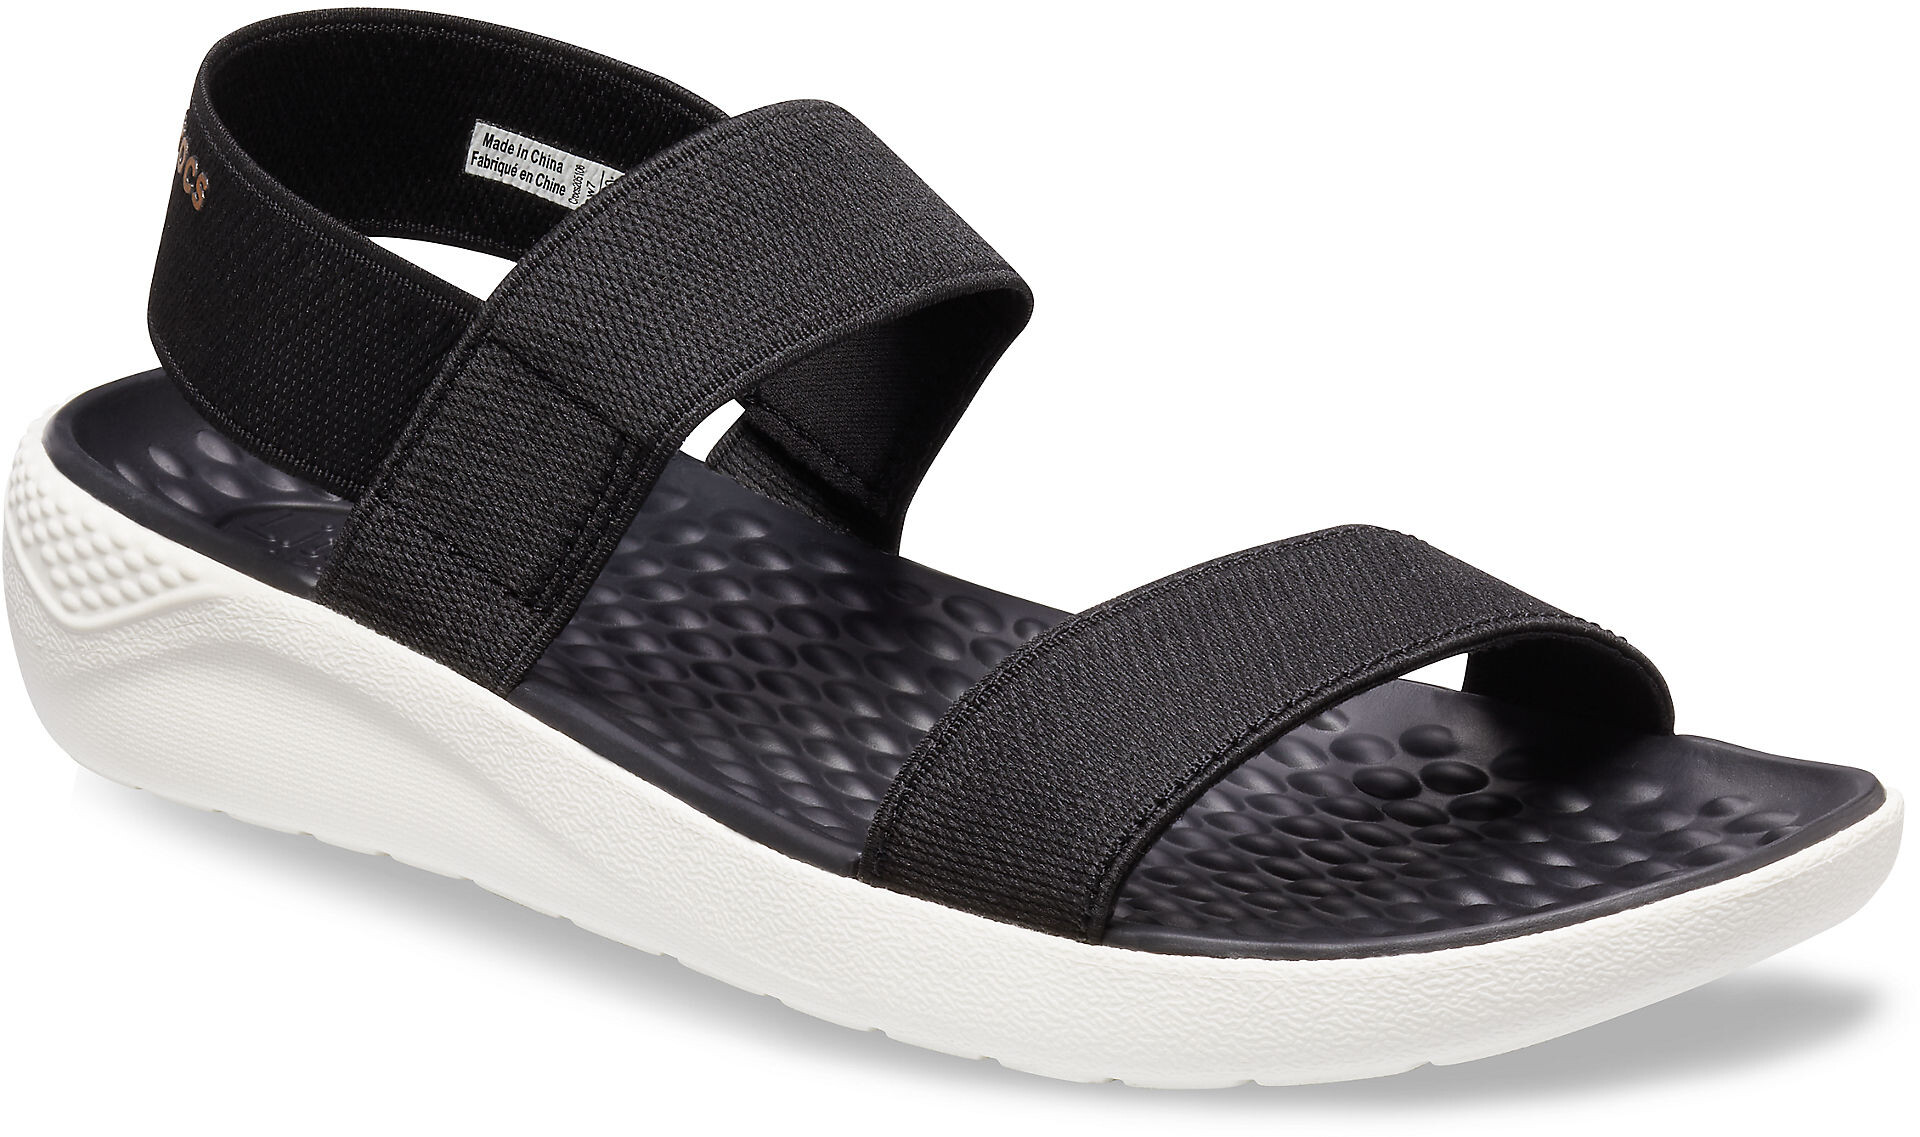 Black Diamond Klettergurt Waschen : Crocs literide sandals women black white campz.de